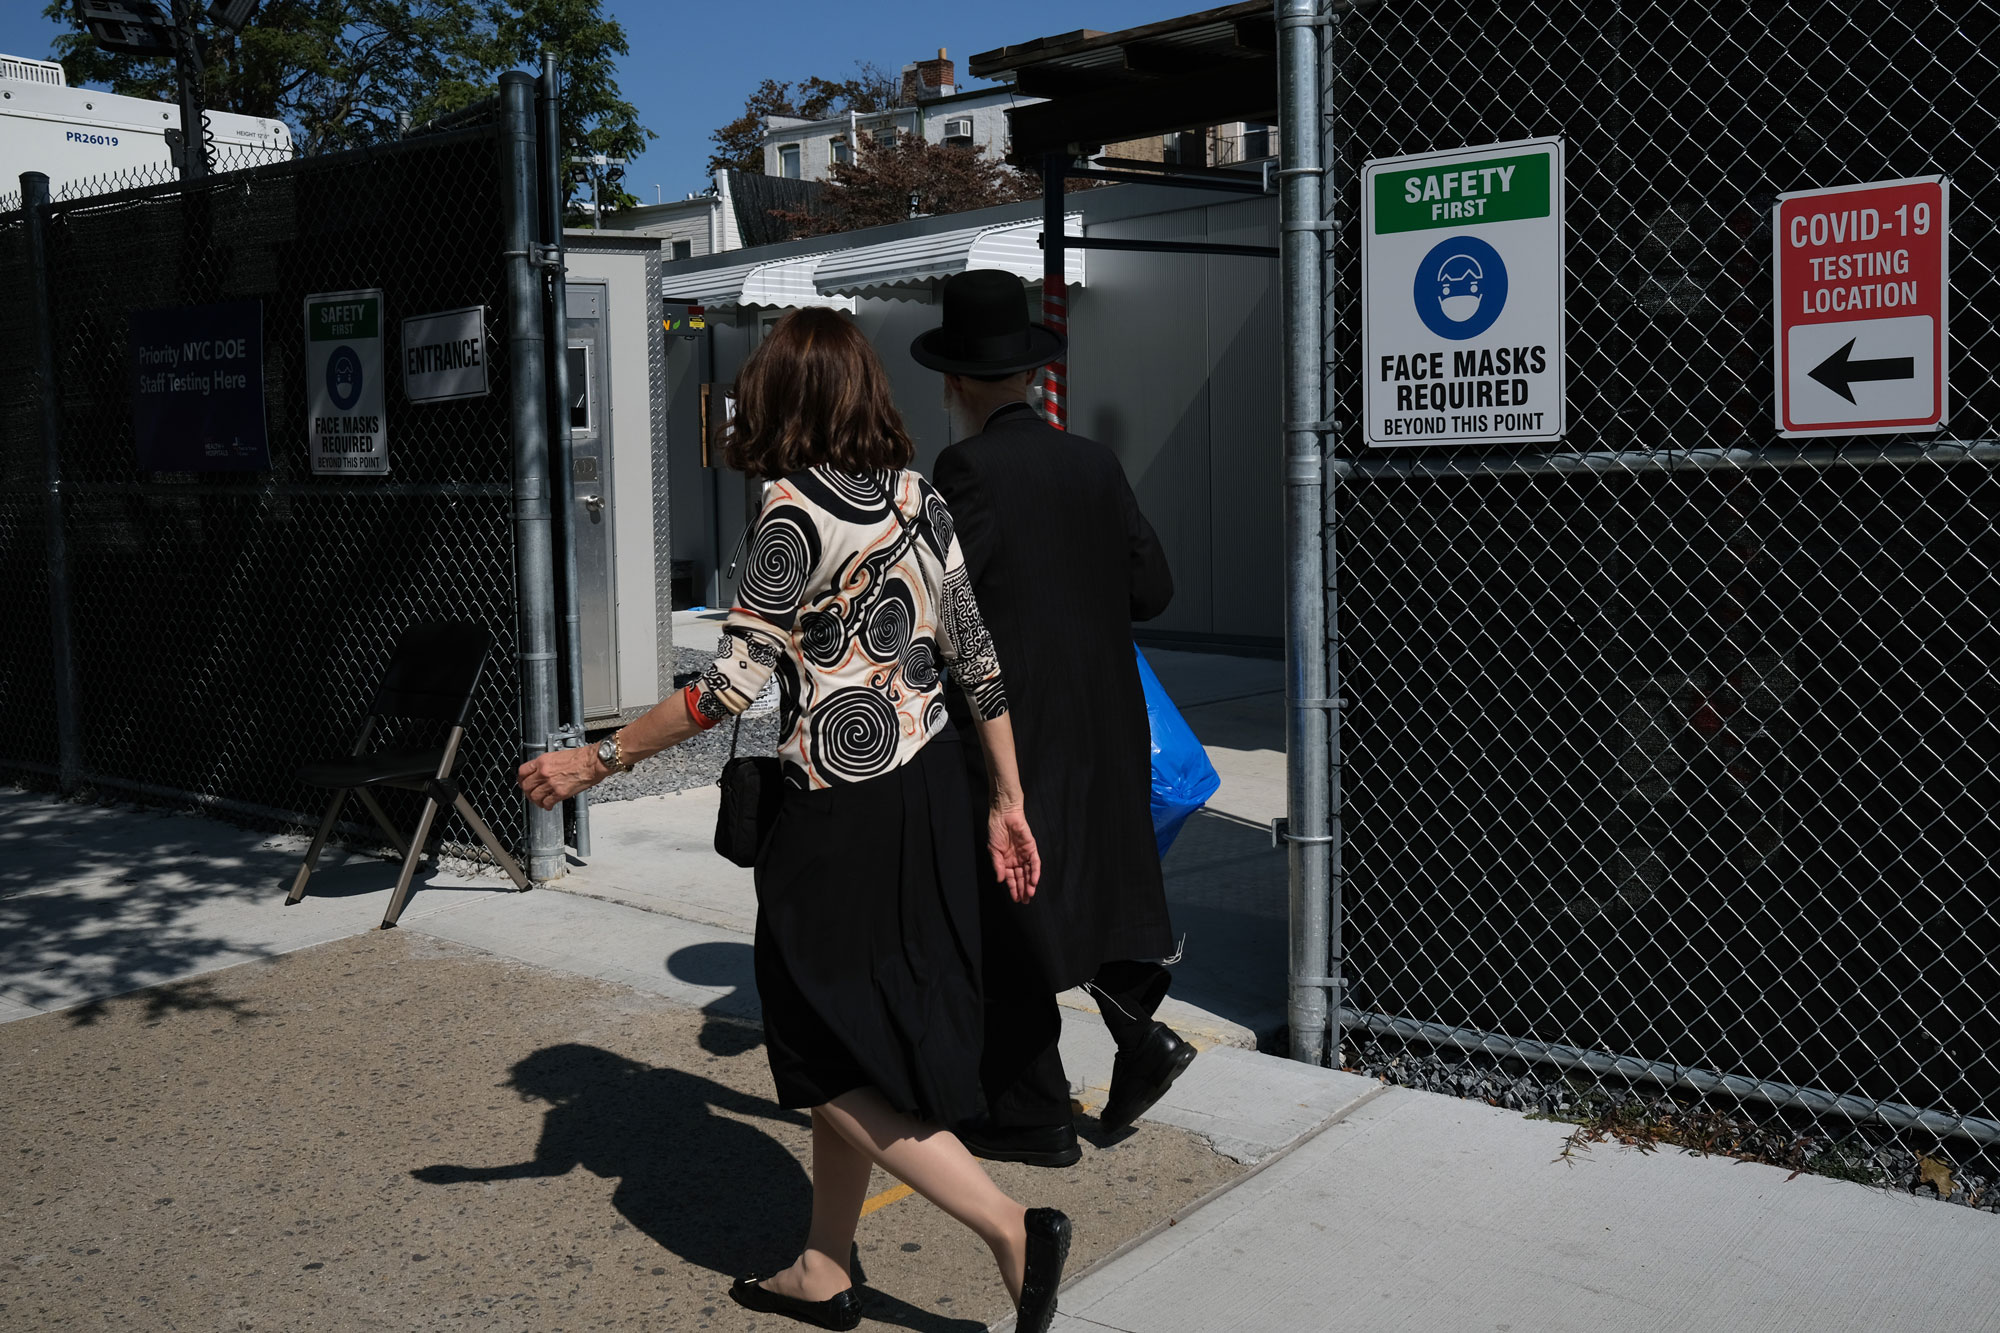 Residents walk by a COVID-19 testing site in the Brooklyn neighborhood of Borough Park on September 23 in New York City.